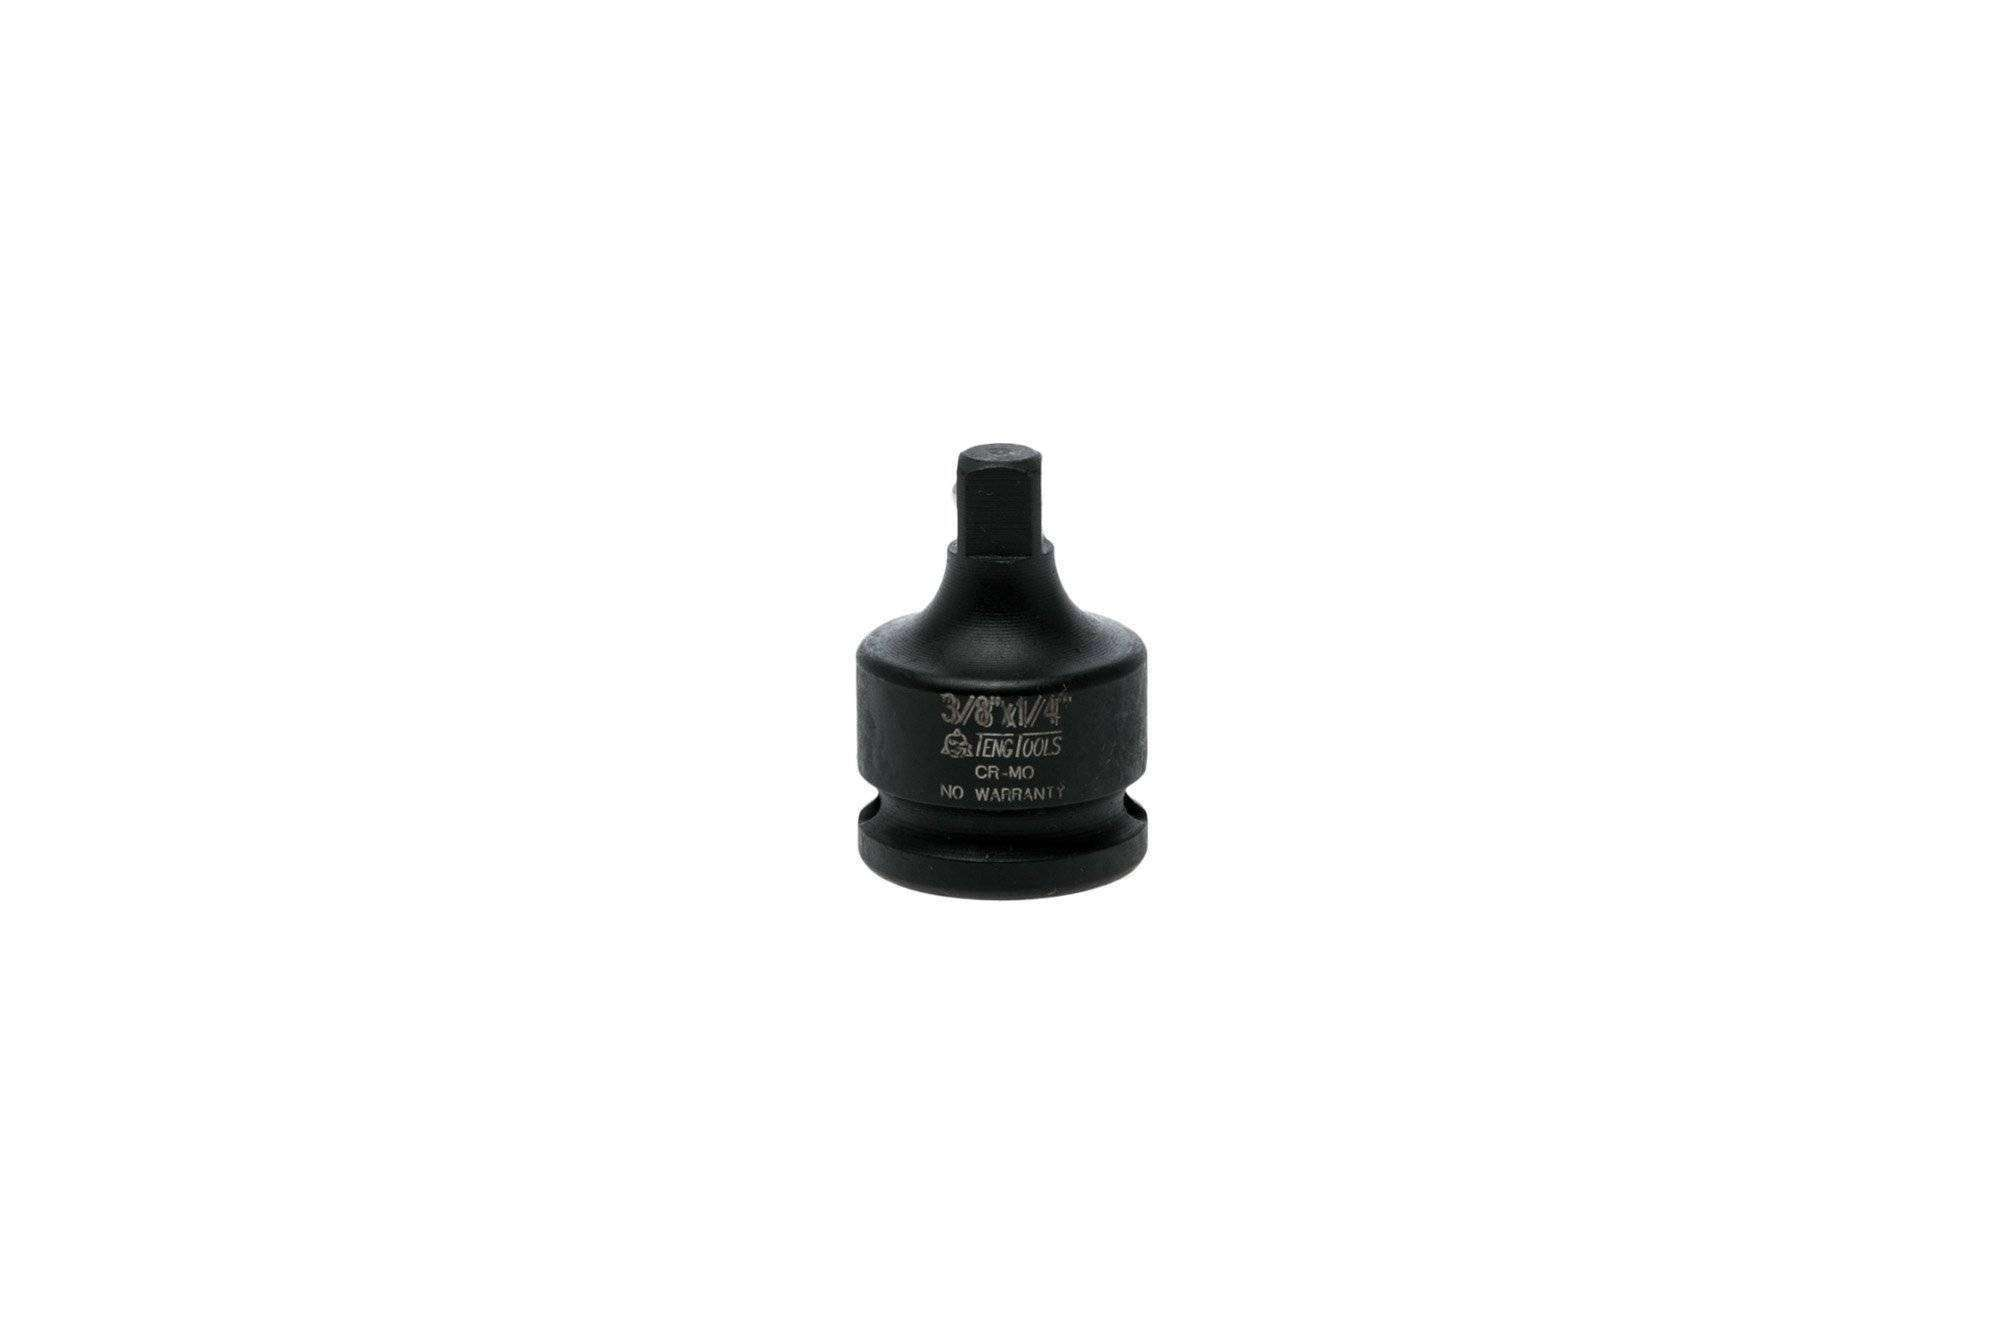 Teng Tools - 3/8 Inch Drive Female to 1/4 Inch Drive Male Adaptor - 980035-C - Teng Tools USA